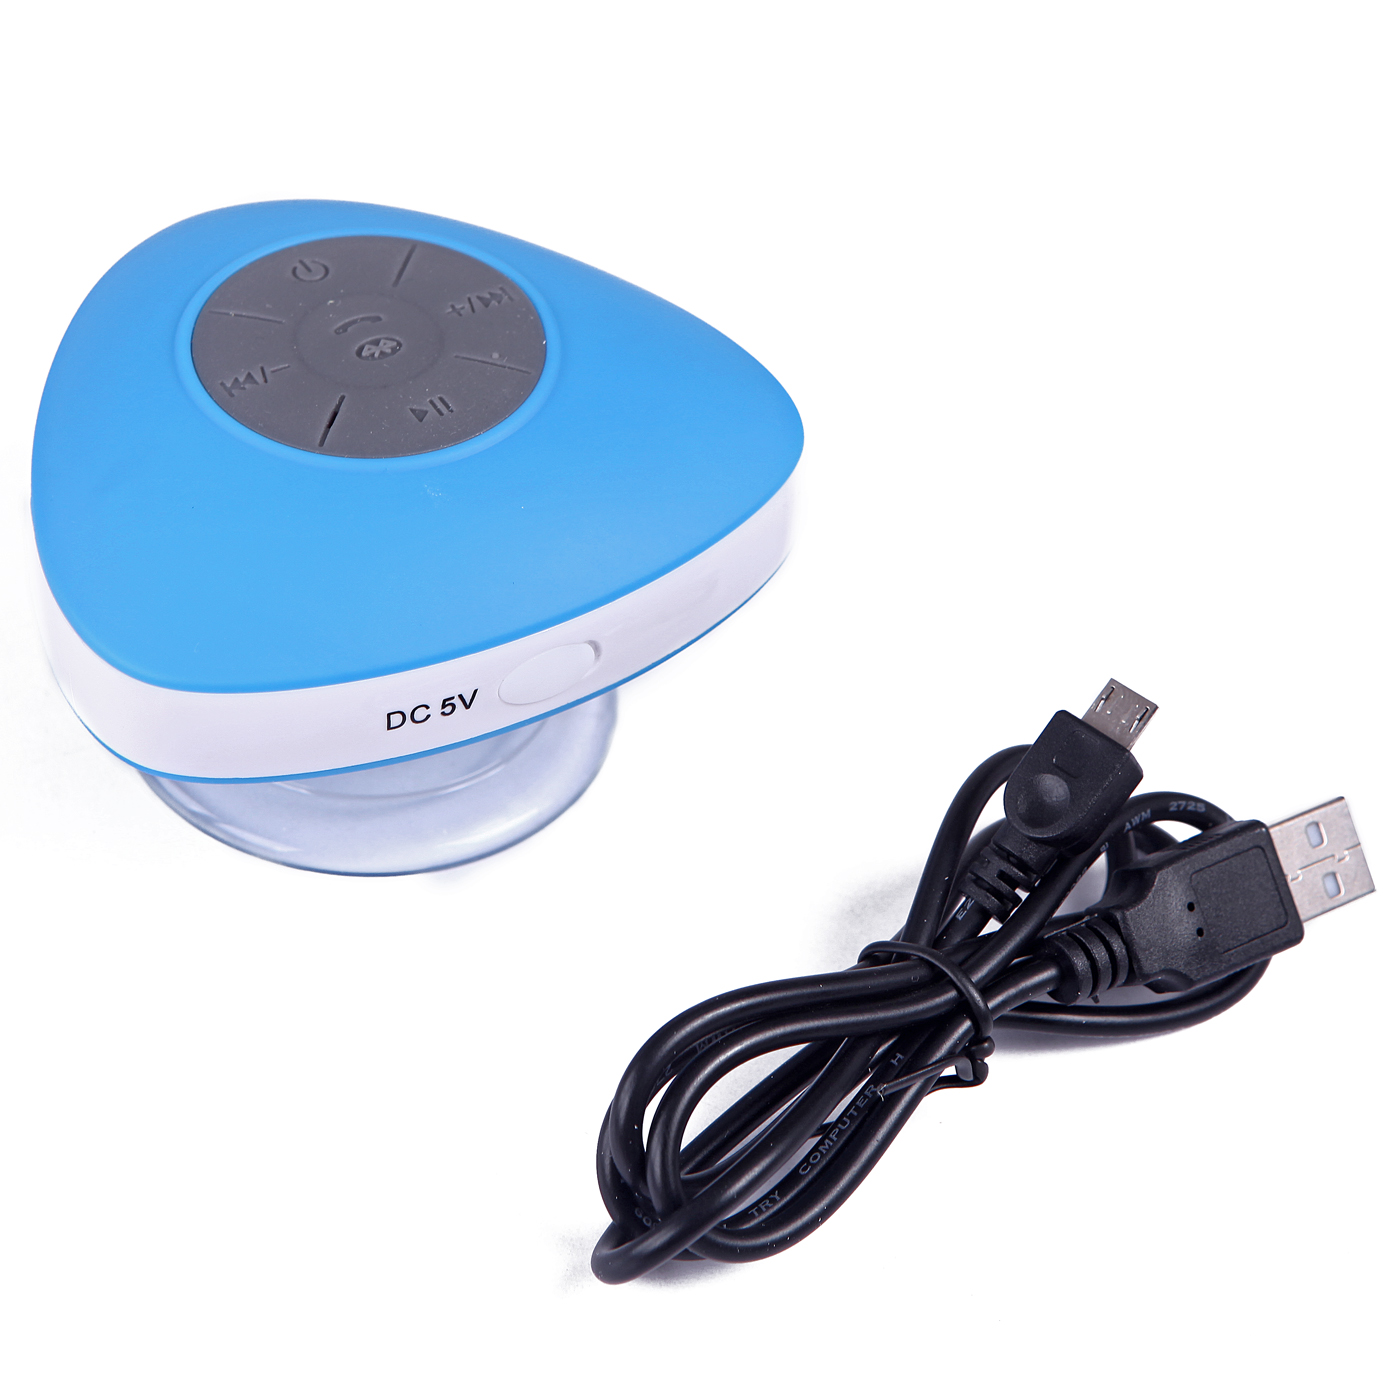 HDE Rechargeable Waterproof Bluetooth Speaker Wireless Streaming Music Player for Shower, Boats, Outdoor (Blue)